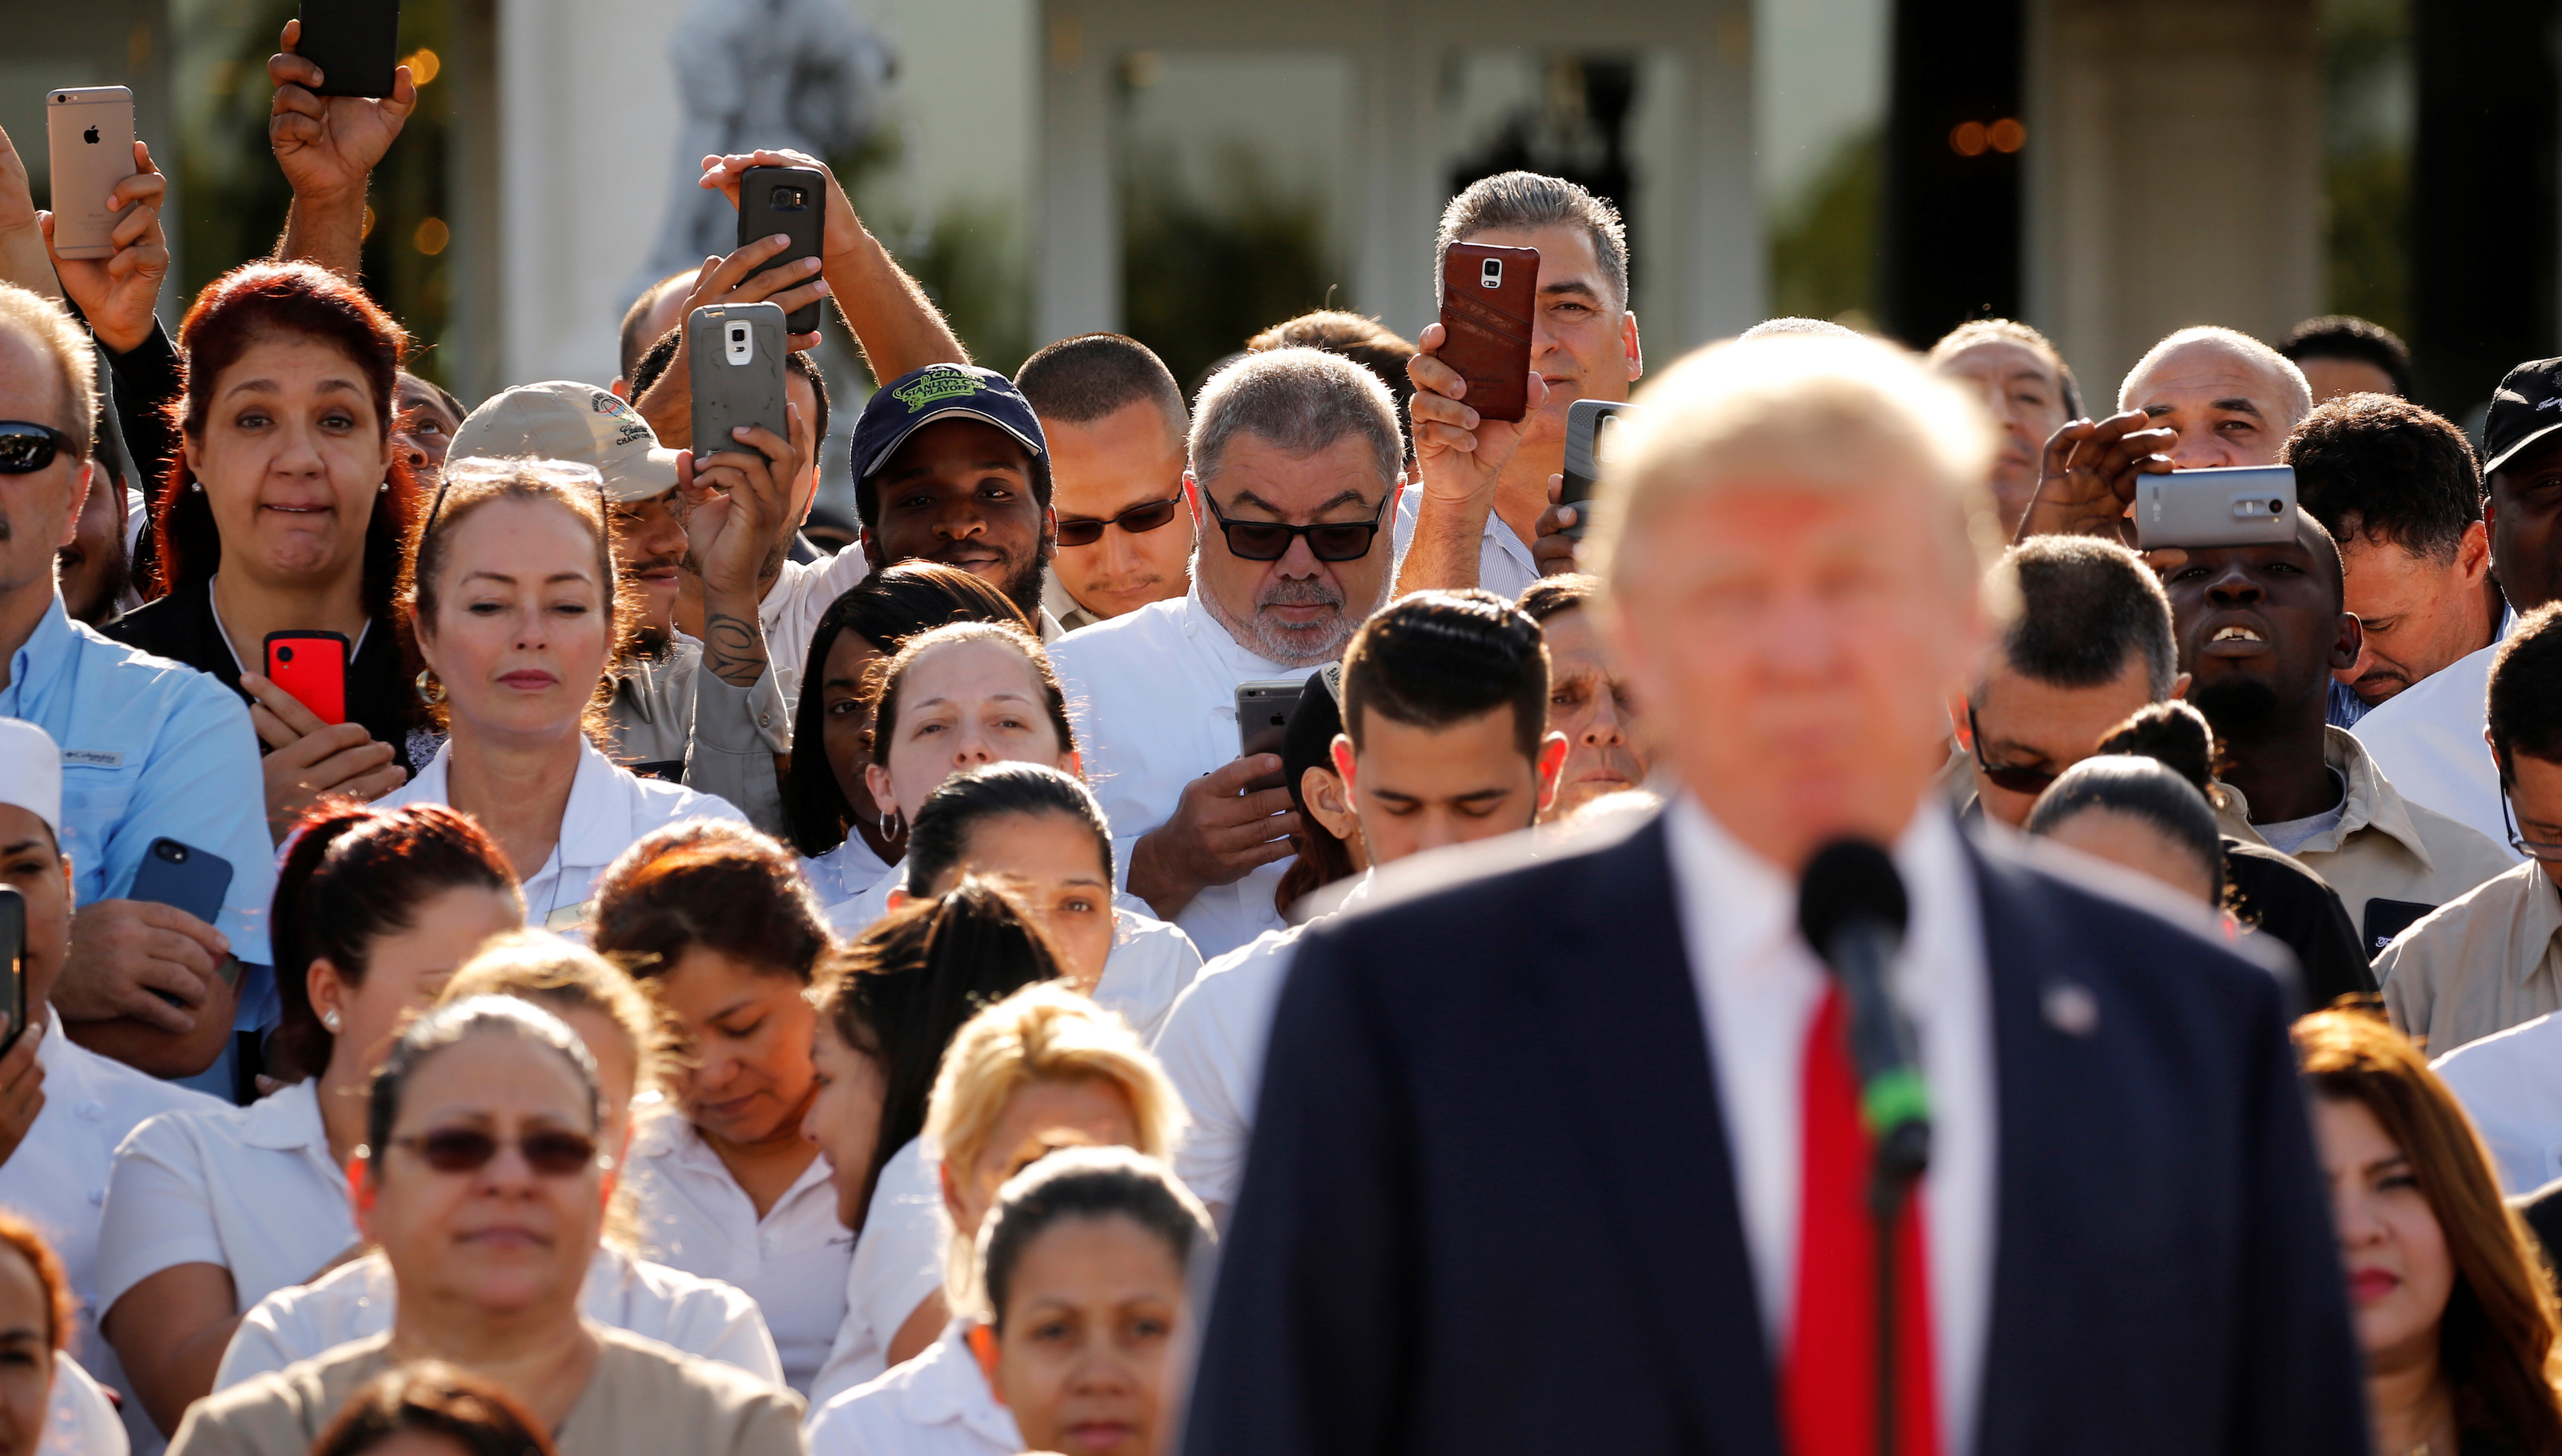 Employees of Republican U.S. presidential nominee Donald Trump stand behind him in support at a campaign event at his Trump National Doral golf club in Miami, Florida, U.S. October 25, 2016. REUTERS/Jonathan Ernst - RTX2QDWN